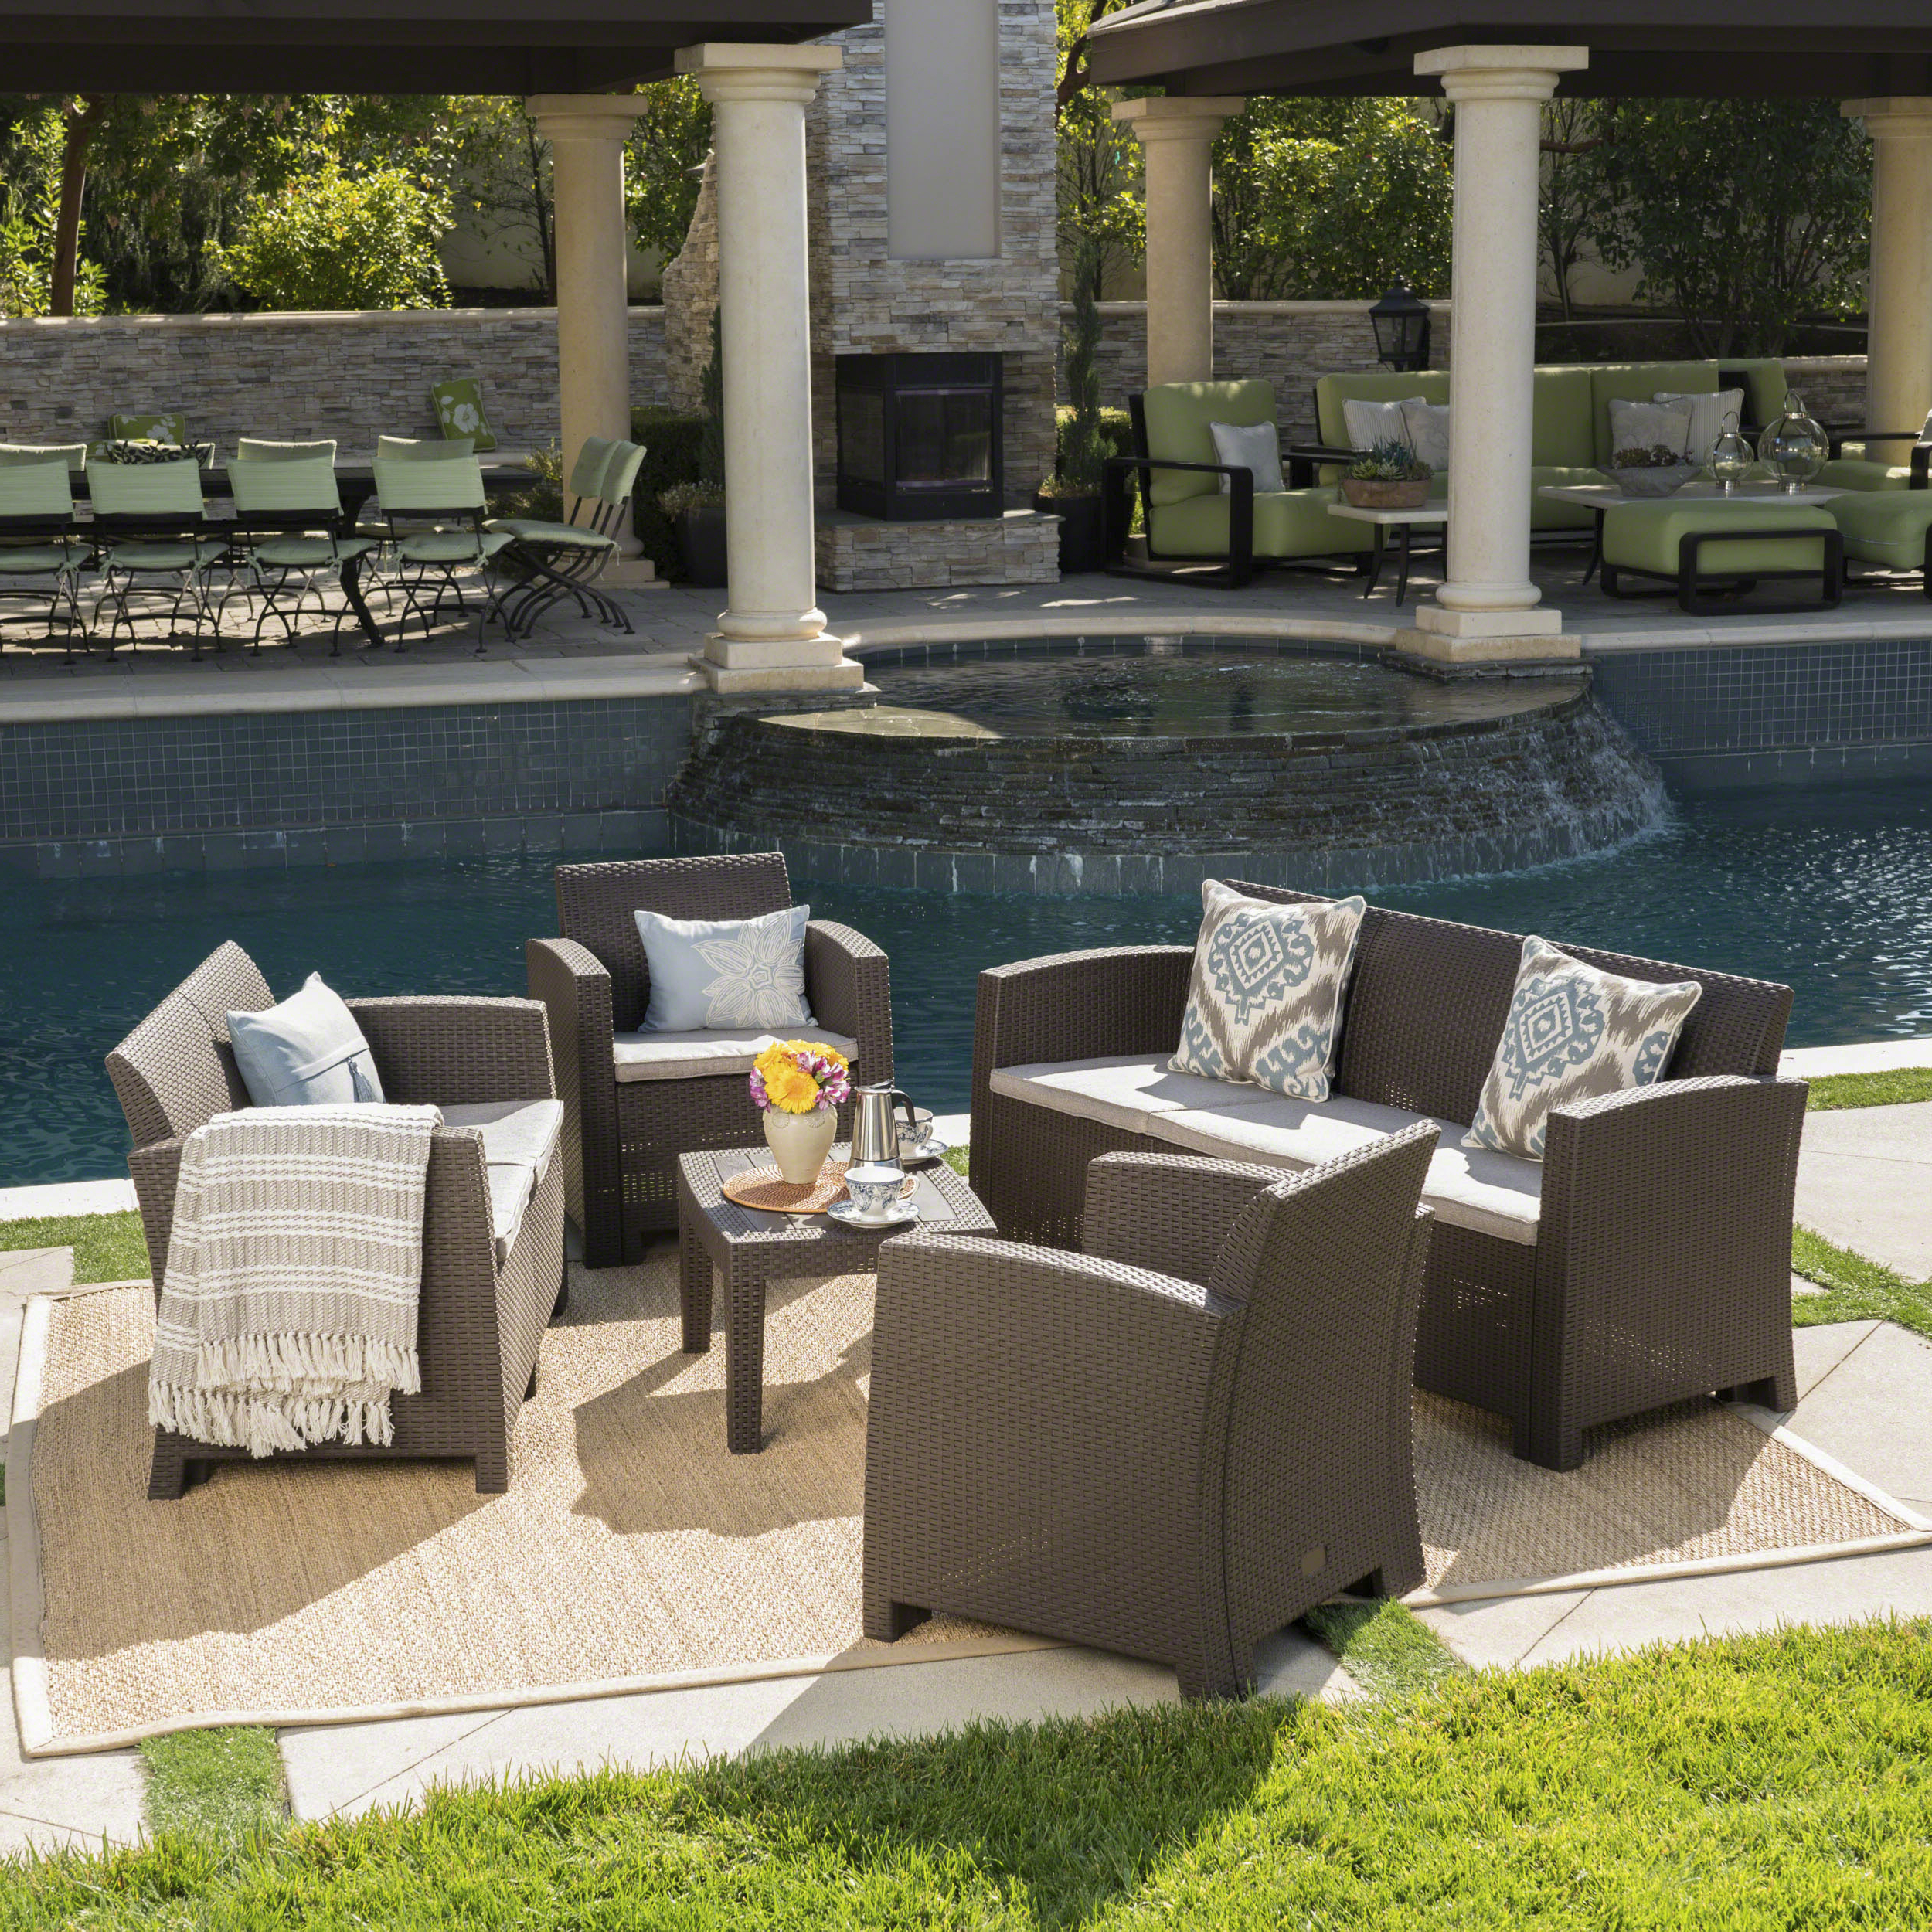 Yoselin Patio Sofas With Cushions Within Most Popular Yoselin 5 Piece Sofa Seating Group With Cushions & Reviews (View 20 of 20)